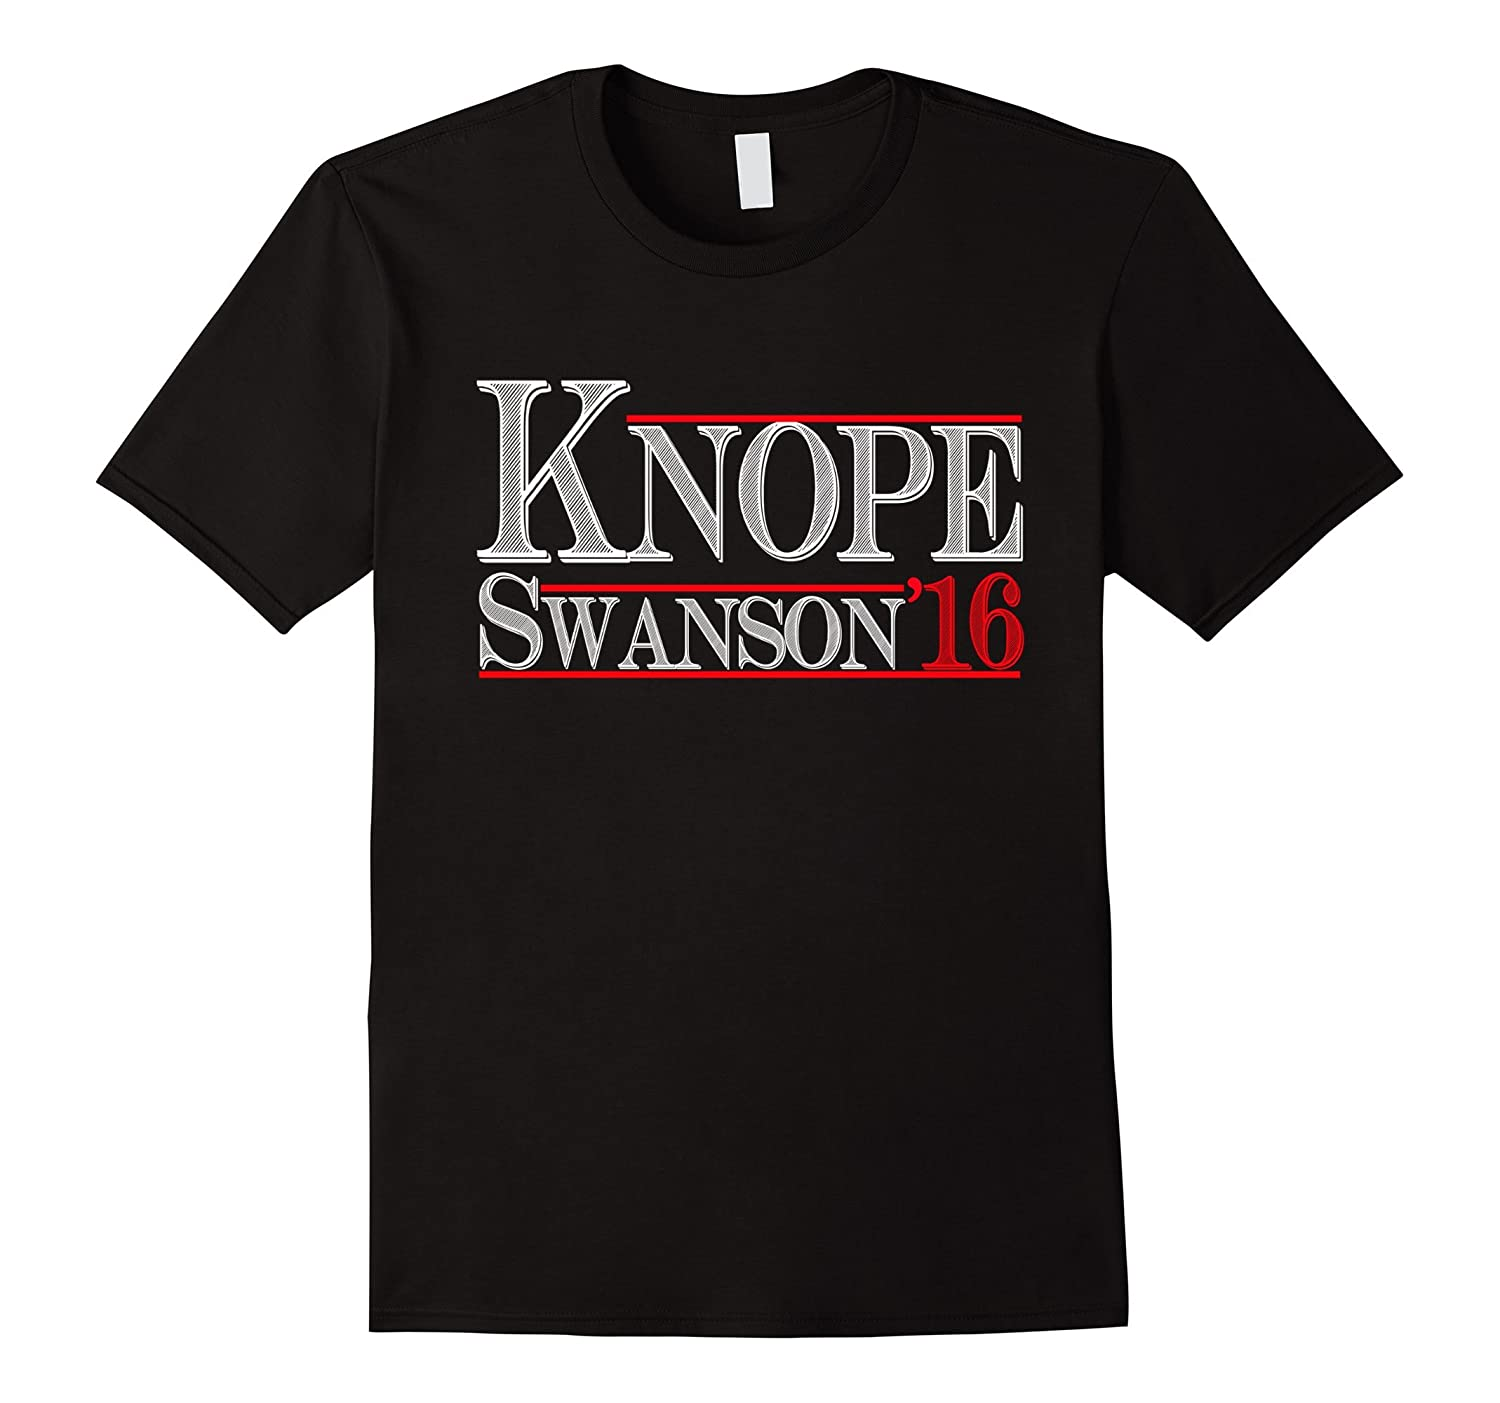 knope swanson 2016 t shirt election campaign tee goatstee. Black Bedroom Furniture Sets. Home Design Ideas